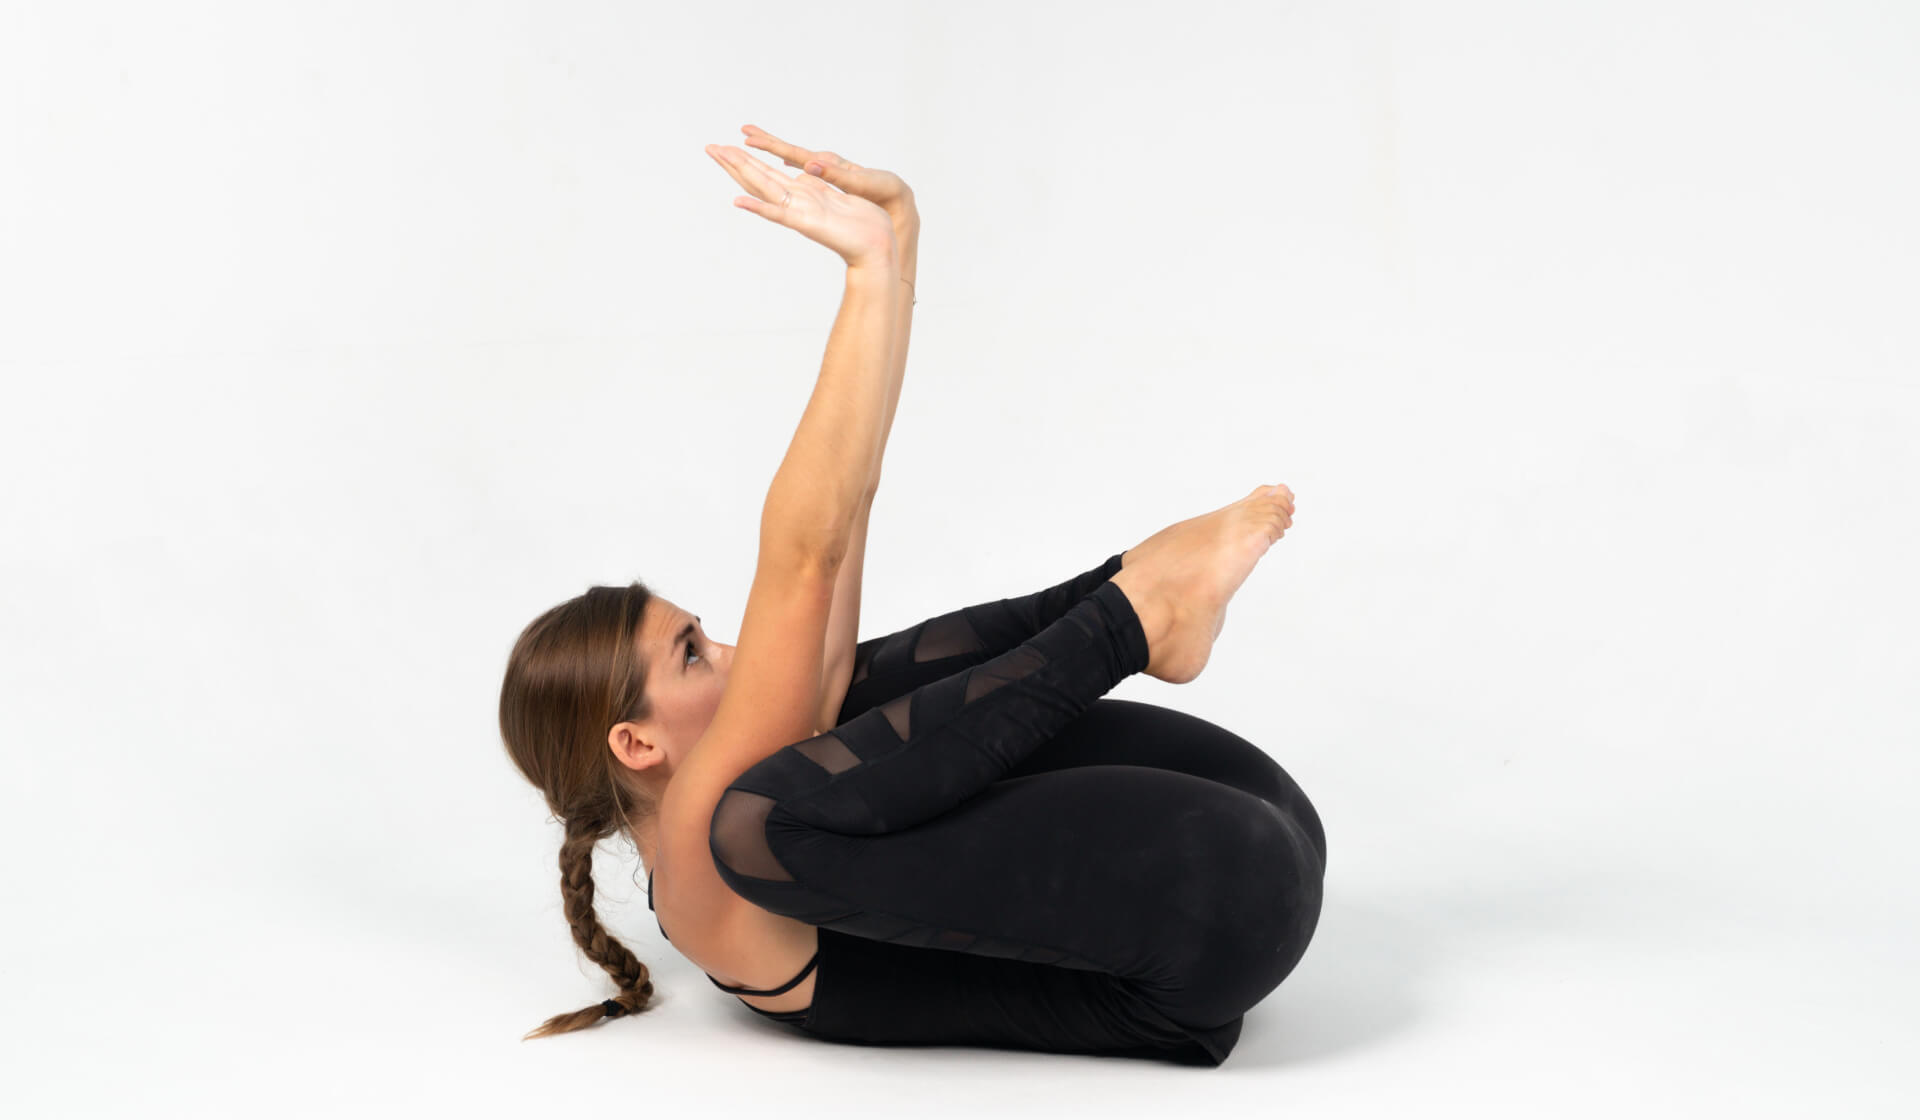 Woman yoga teacher dressed in all black practicing a yoga pose on her back (supine crow pose or supta bakasana) against a white backdrop